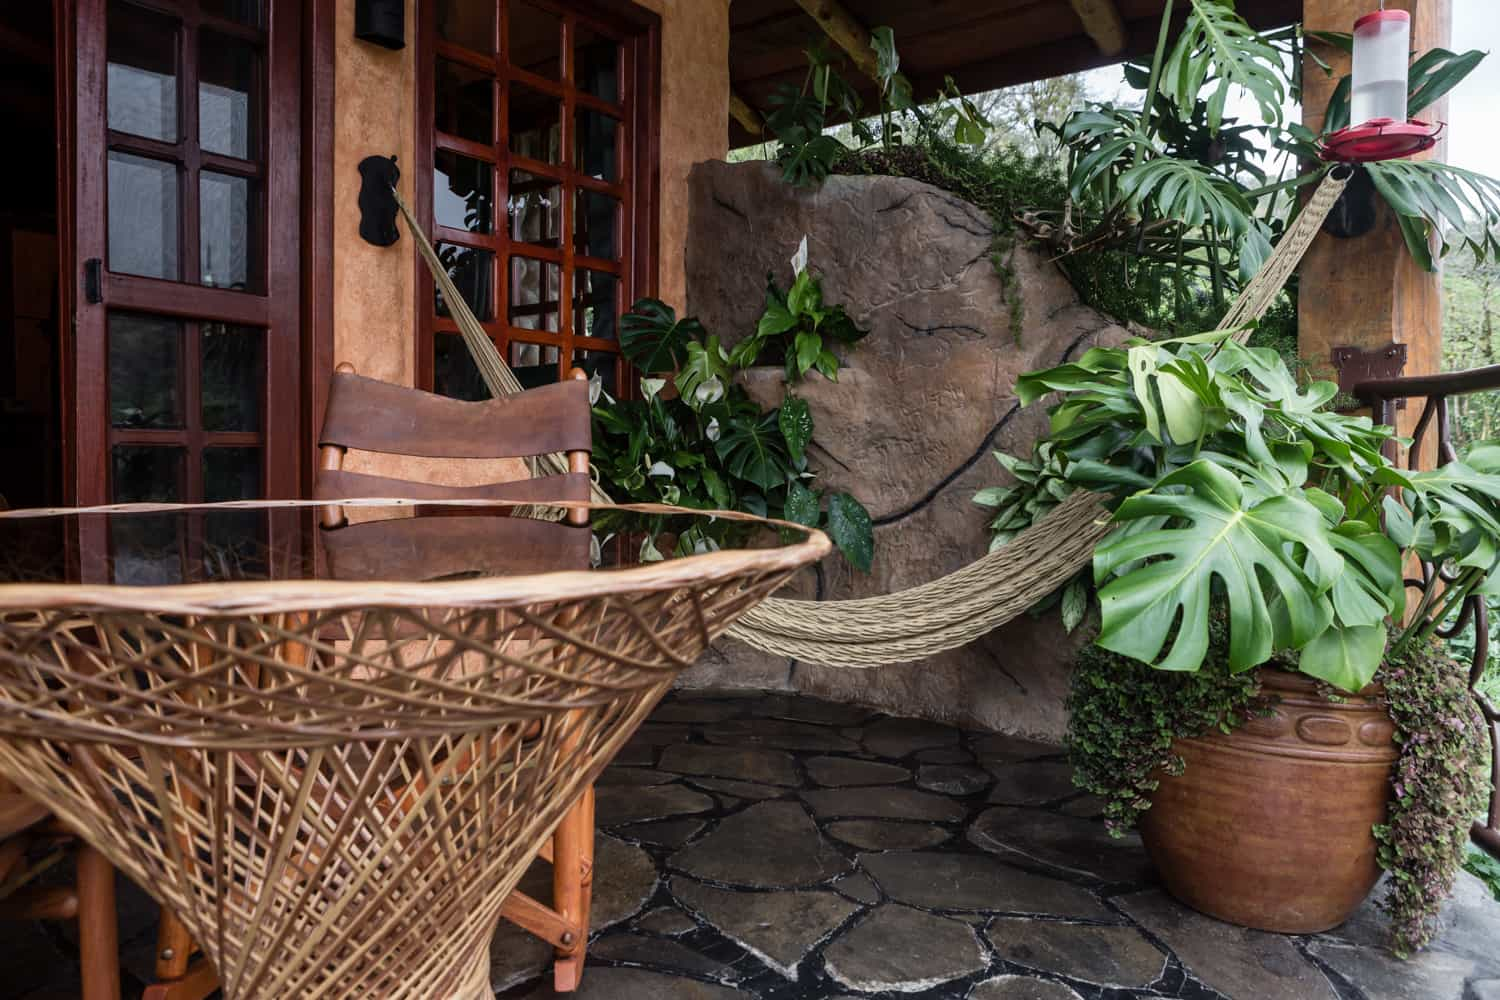 Hammock near balcony entrance in luxury accommodations for just married couple.